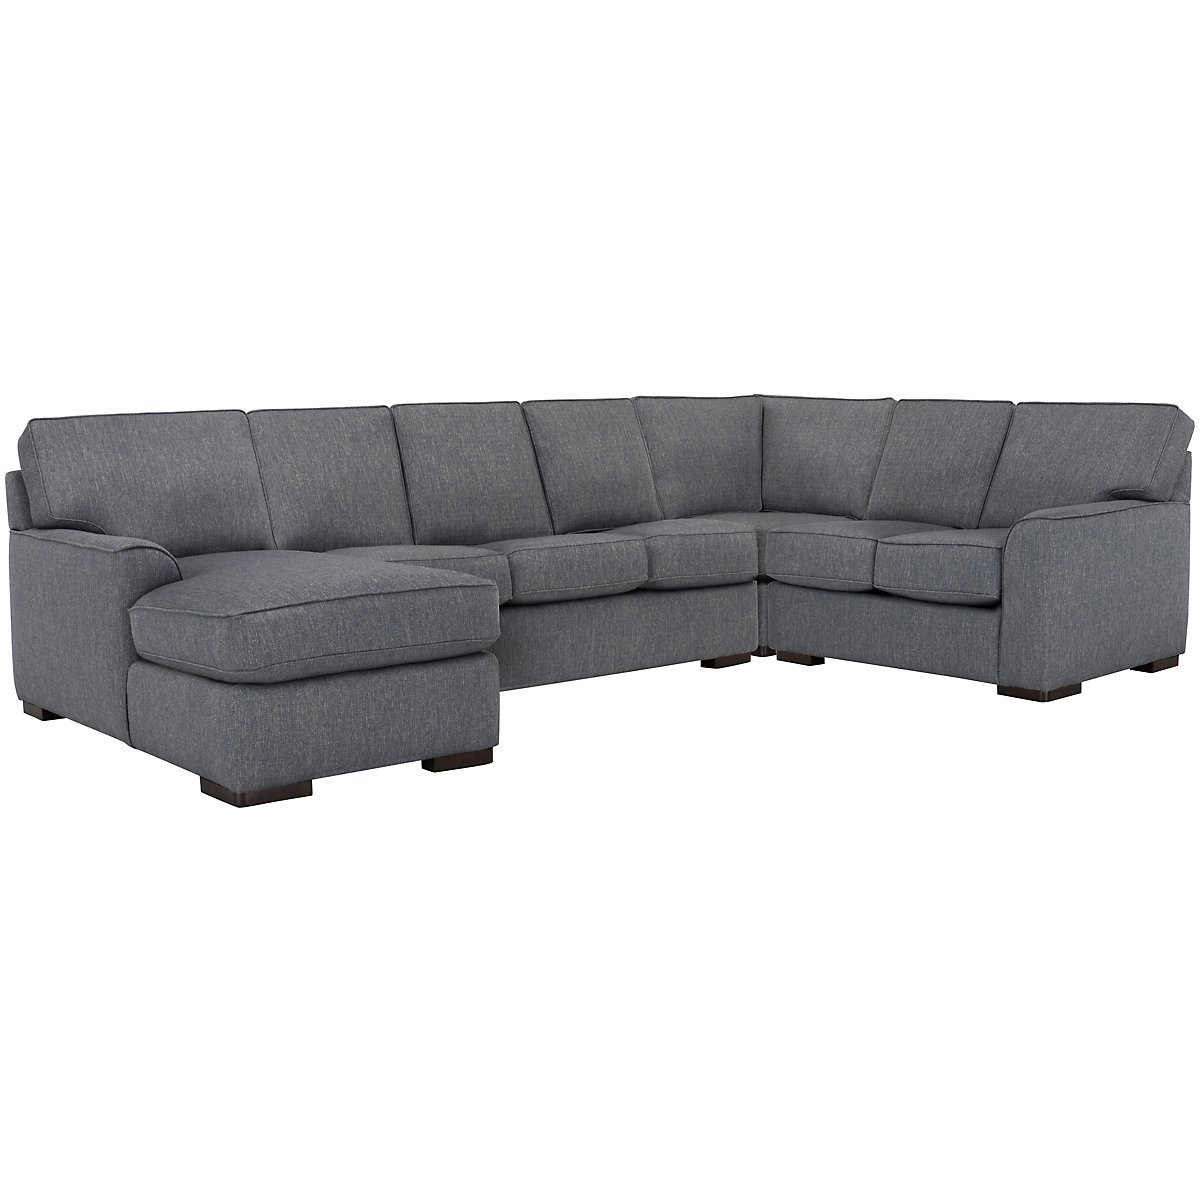 Austin Blue Fabric Left Chaise Innerspring Sleeper Sectional